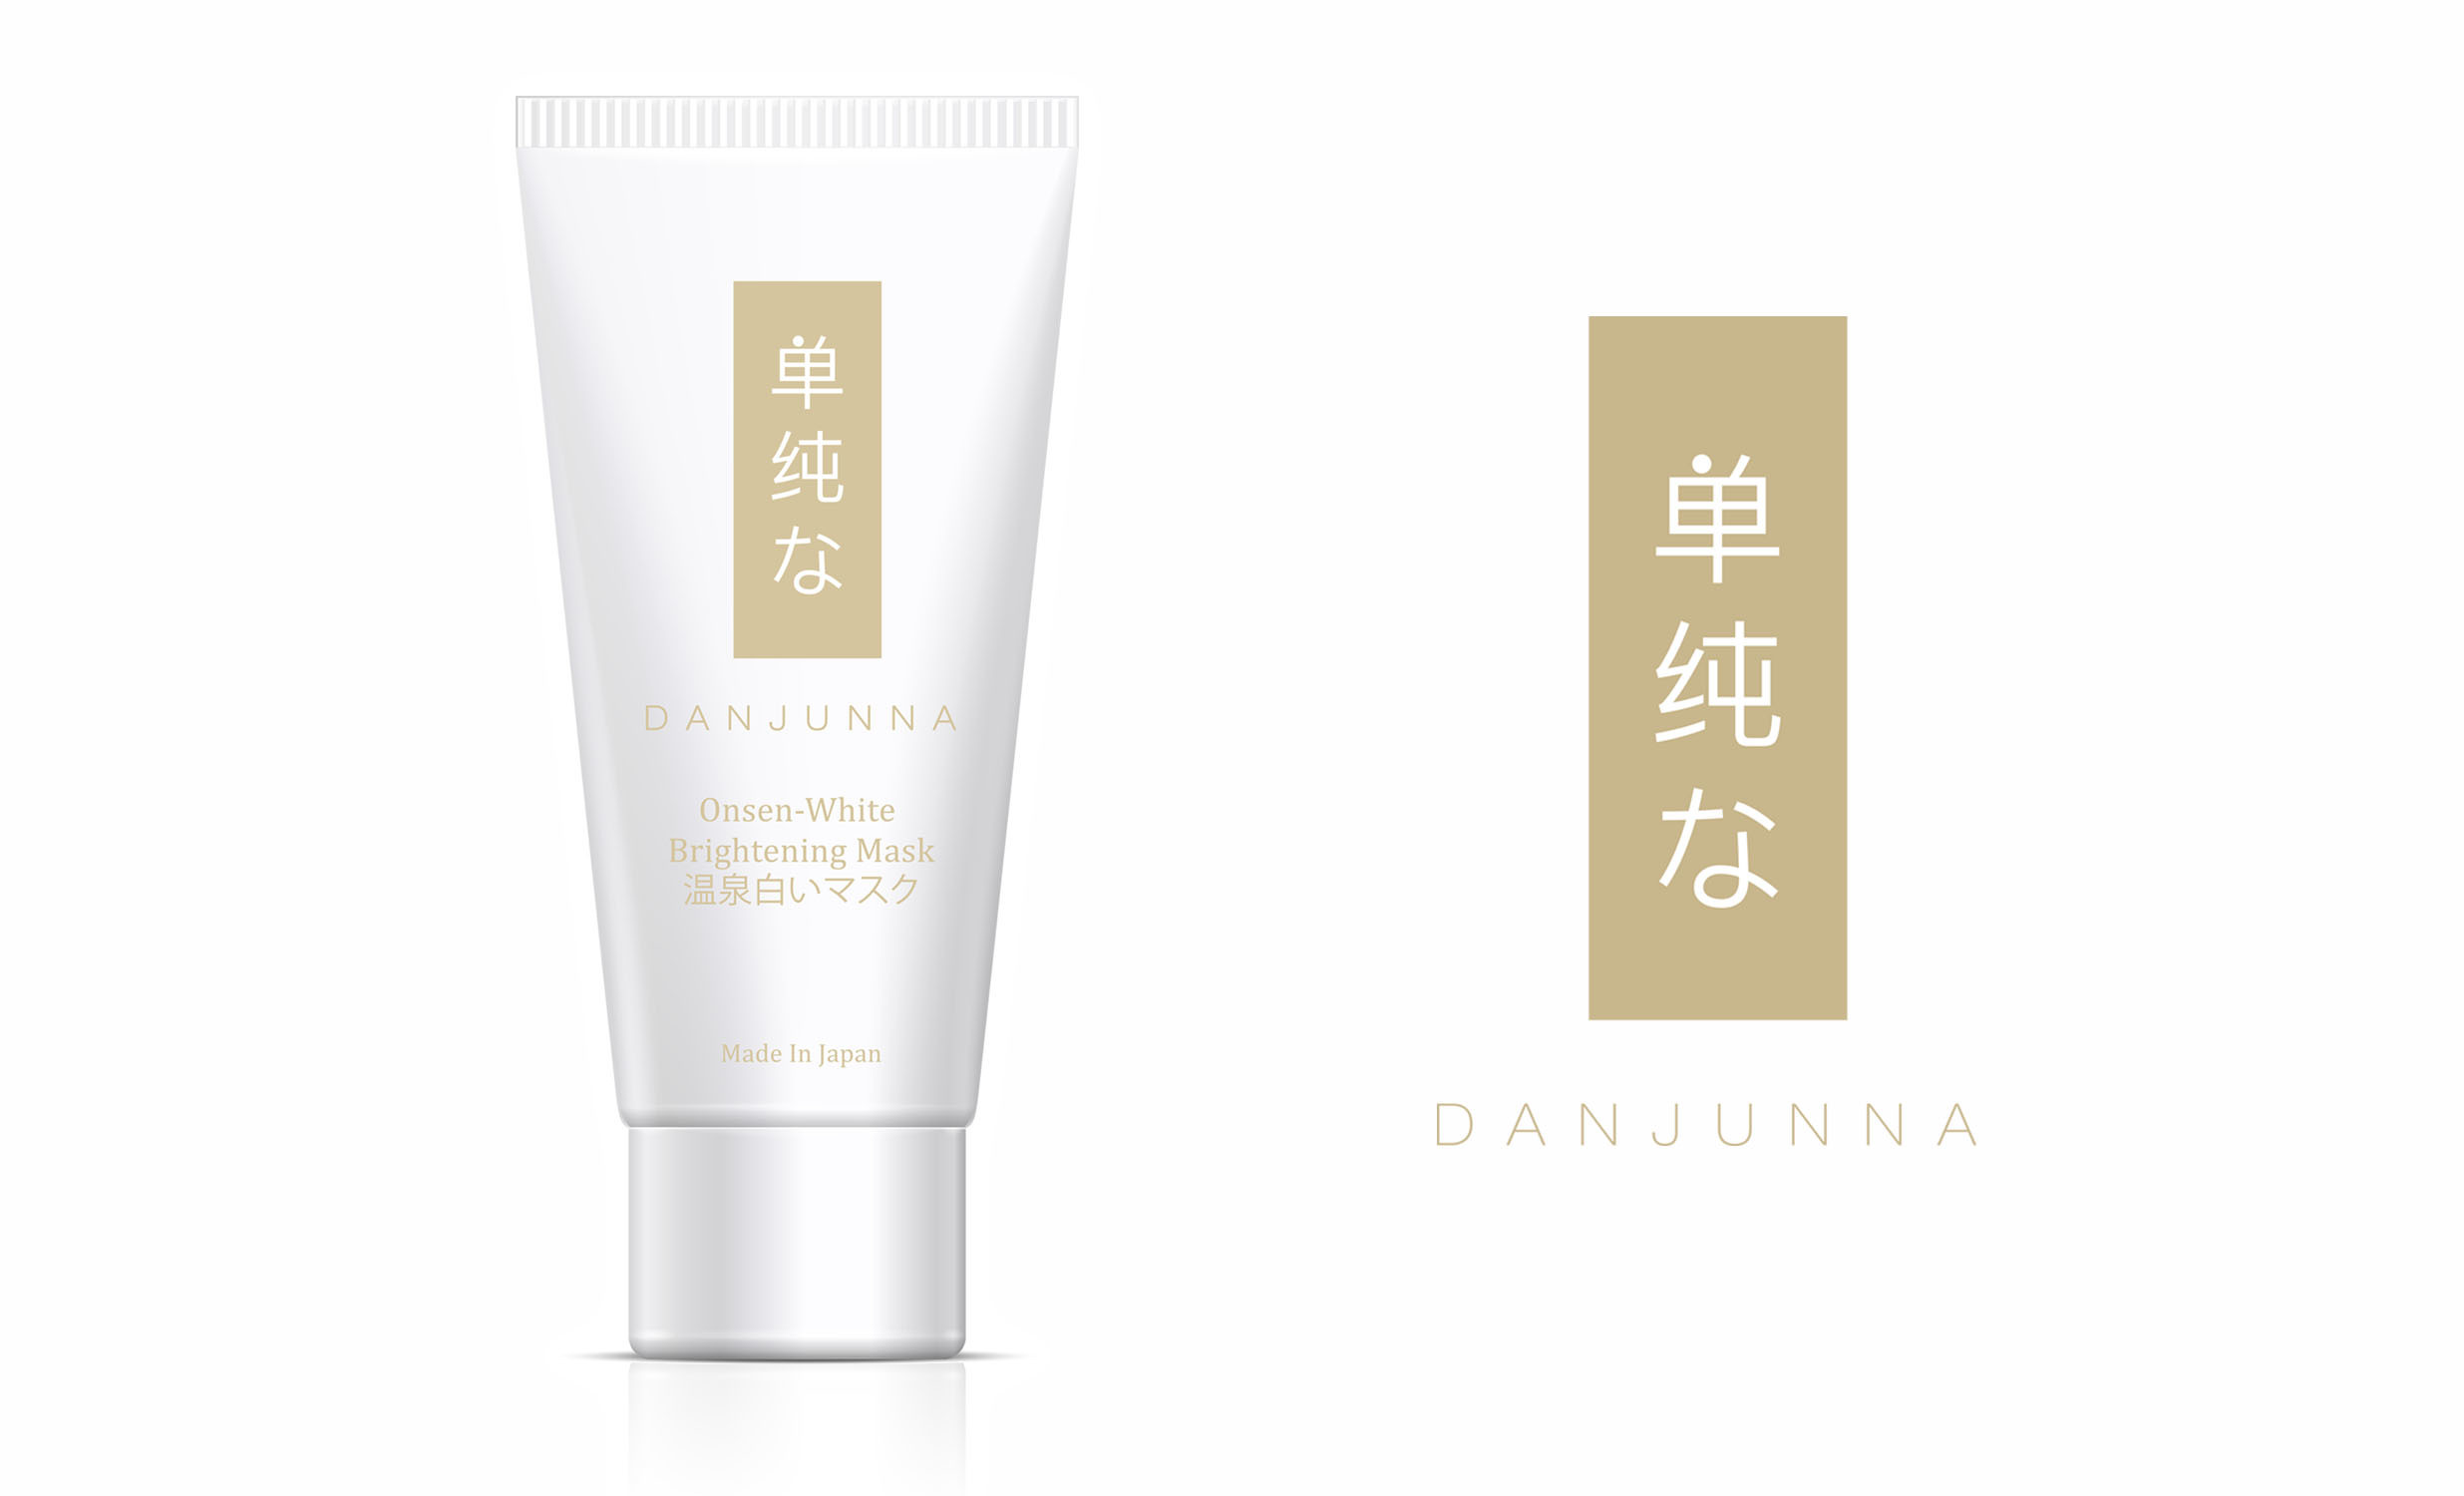 ALL NEW Danjunna Onsen-White Brightening Mask 0008